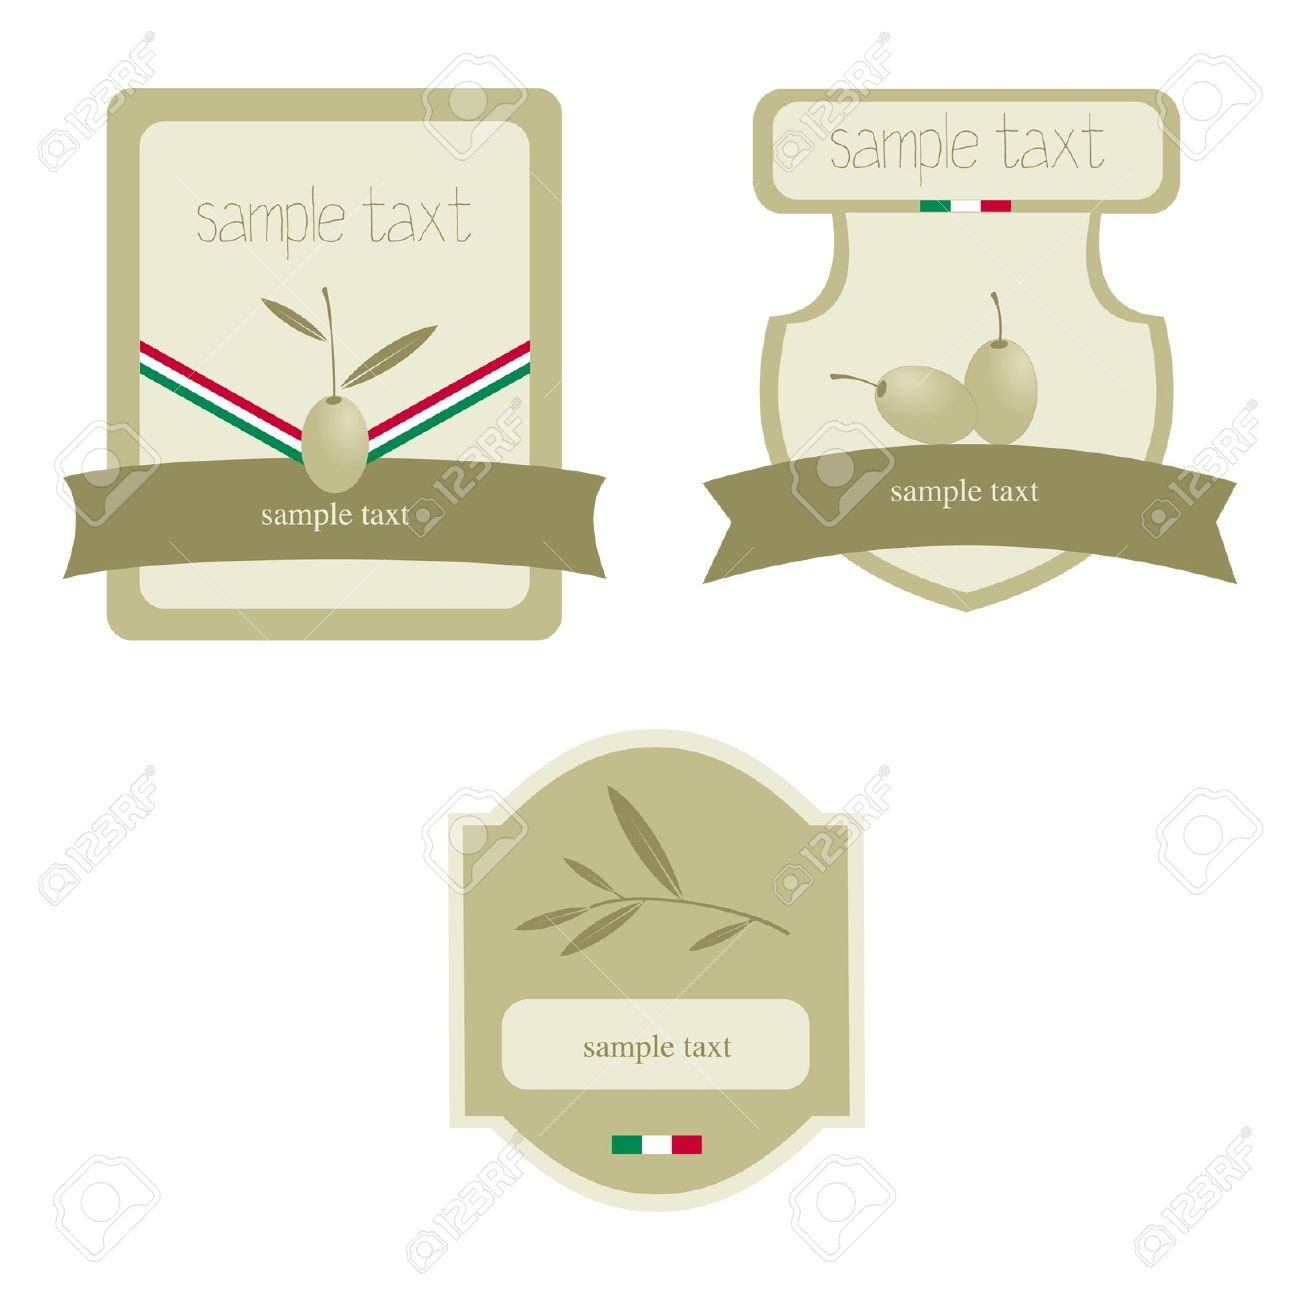 Olive Oil Label / Icon For The Corporate Brand Or Model Of Menu.